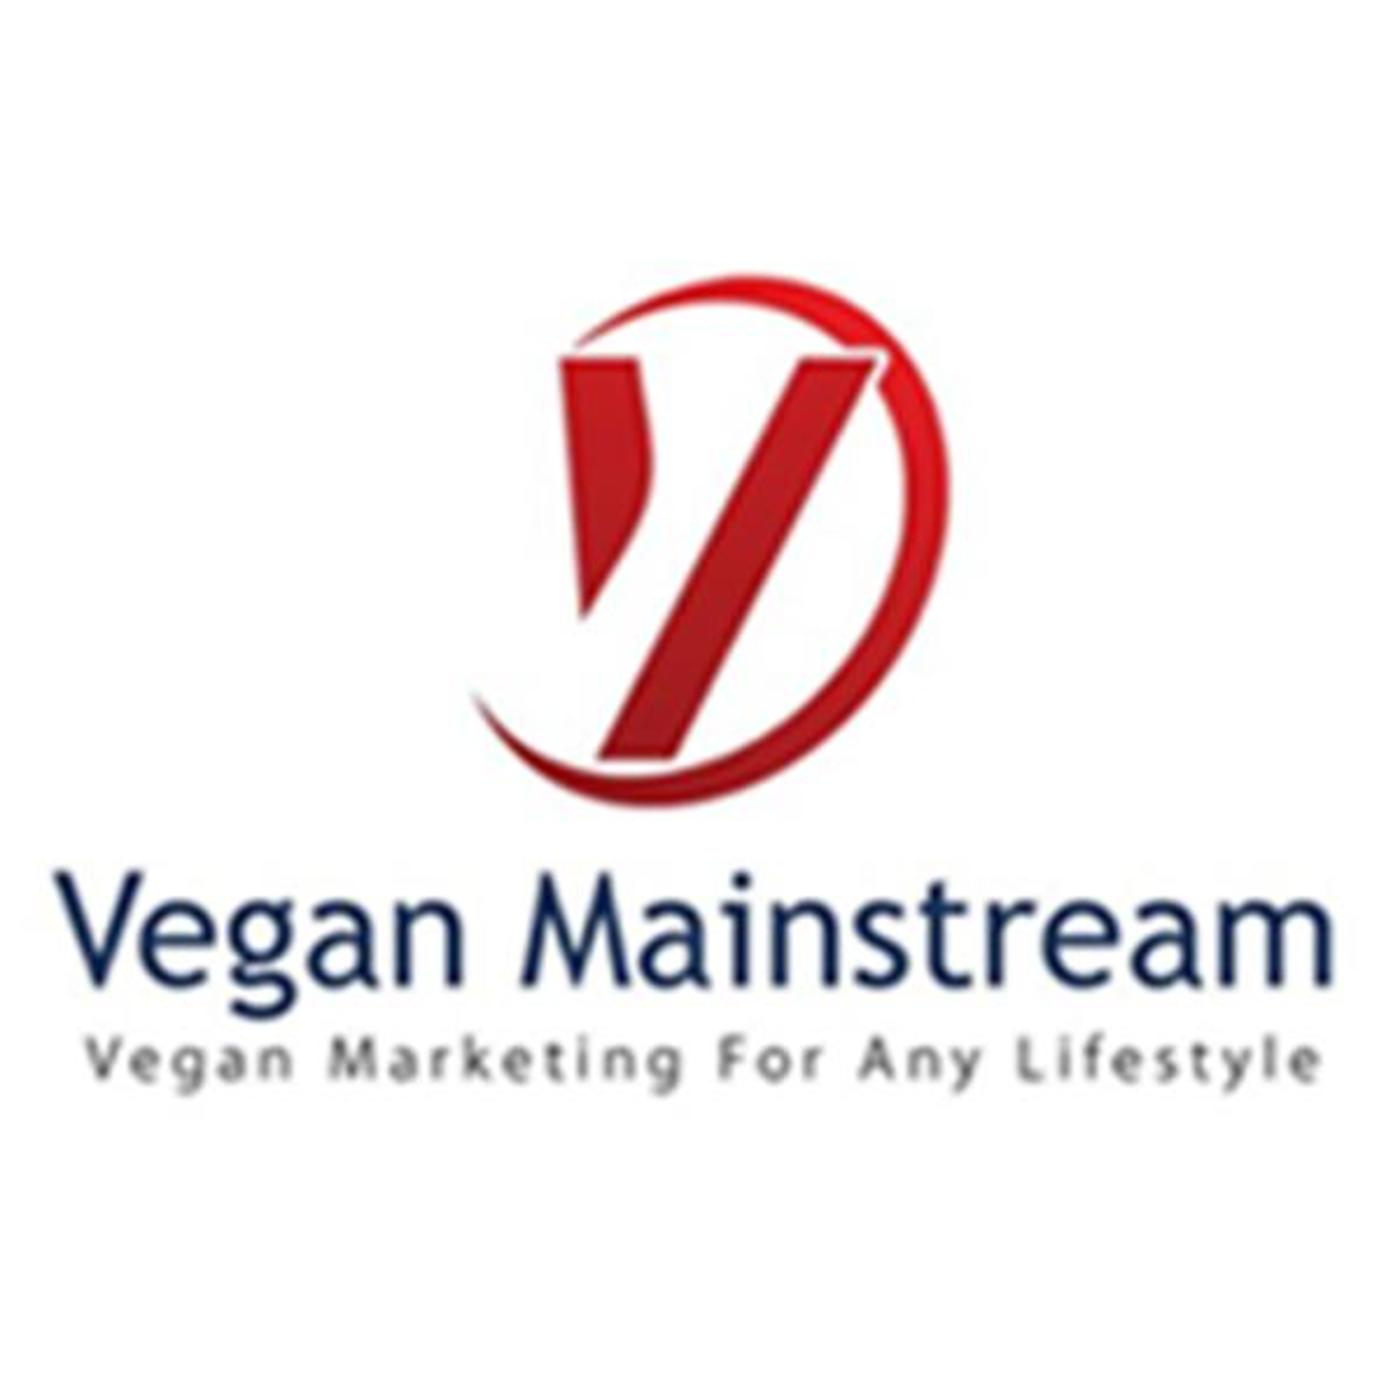 Vegan Mainstream